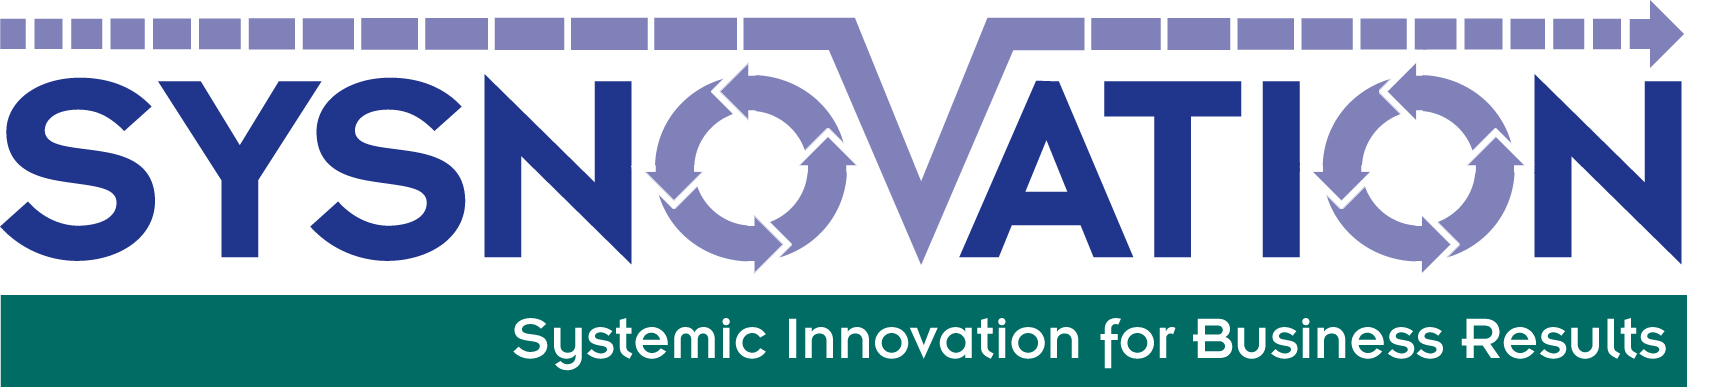 Sysnovation_logo_tag